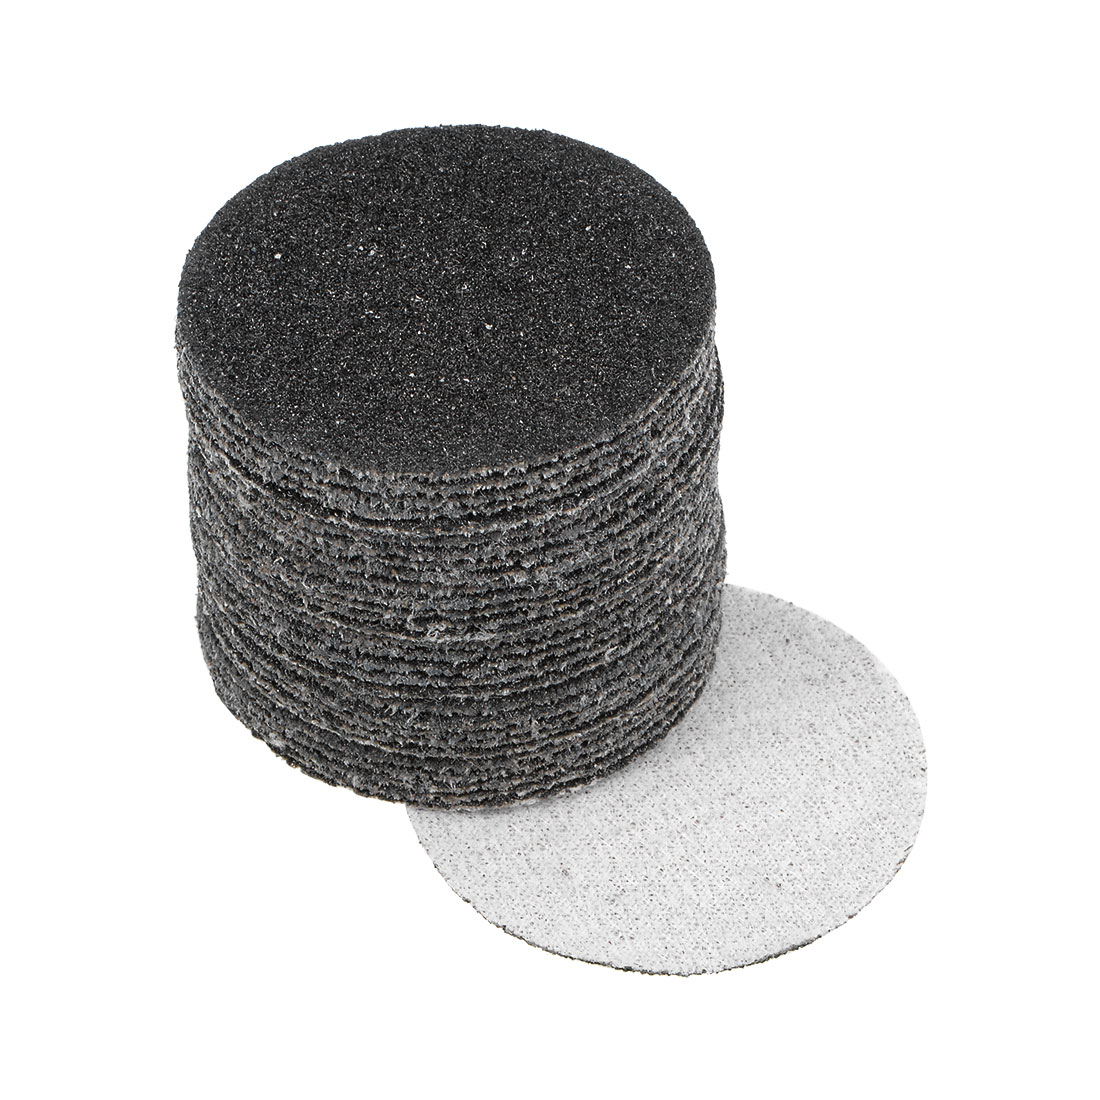 2 inch Wet Dry Discs 60 Grit Hook and Loop Sanding Disc Silicon Carbide 30pcs